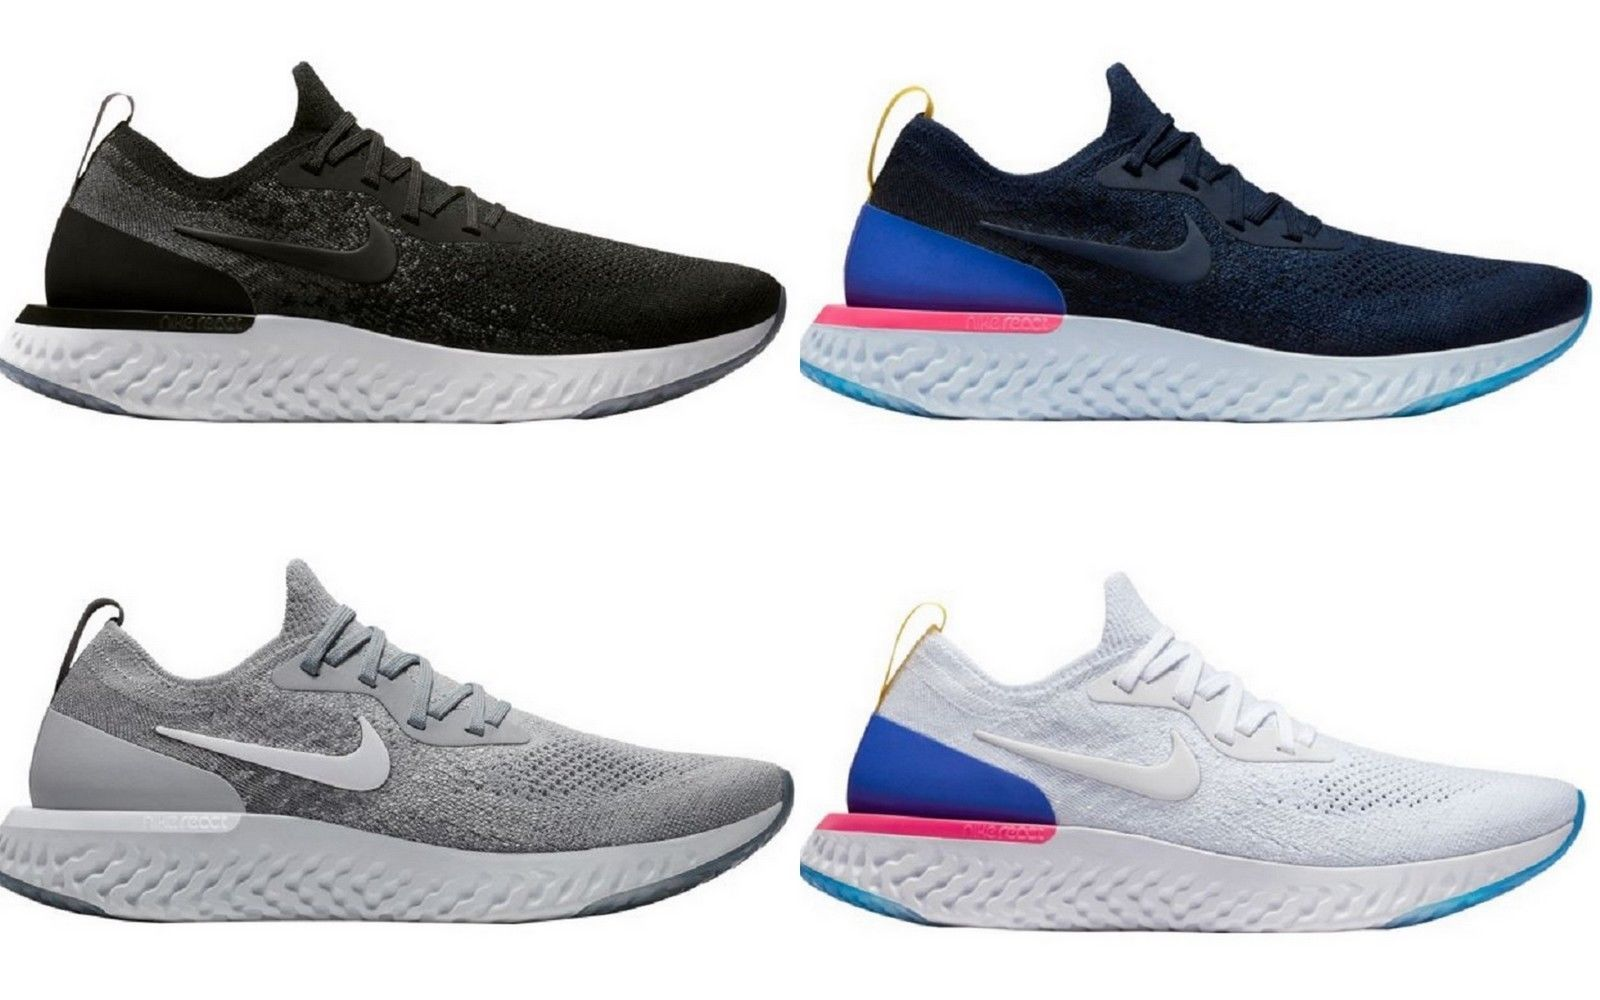 1422fd234796 Athletic 15709  Nike Men S Epic React Flyknit Running Shoes - New With  Box!! -  BUY IT NOW ONLY   172.87 on eBay!